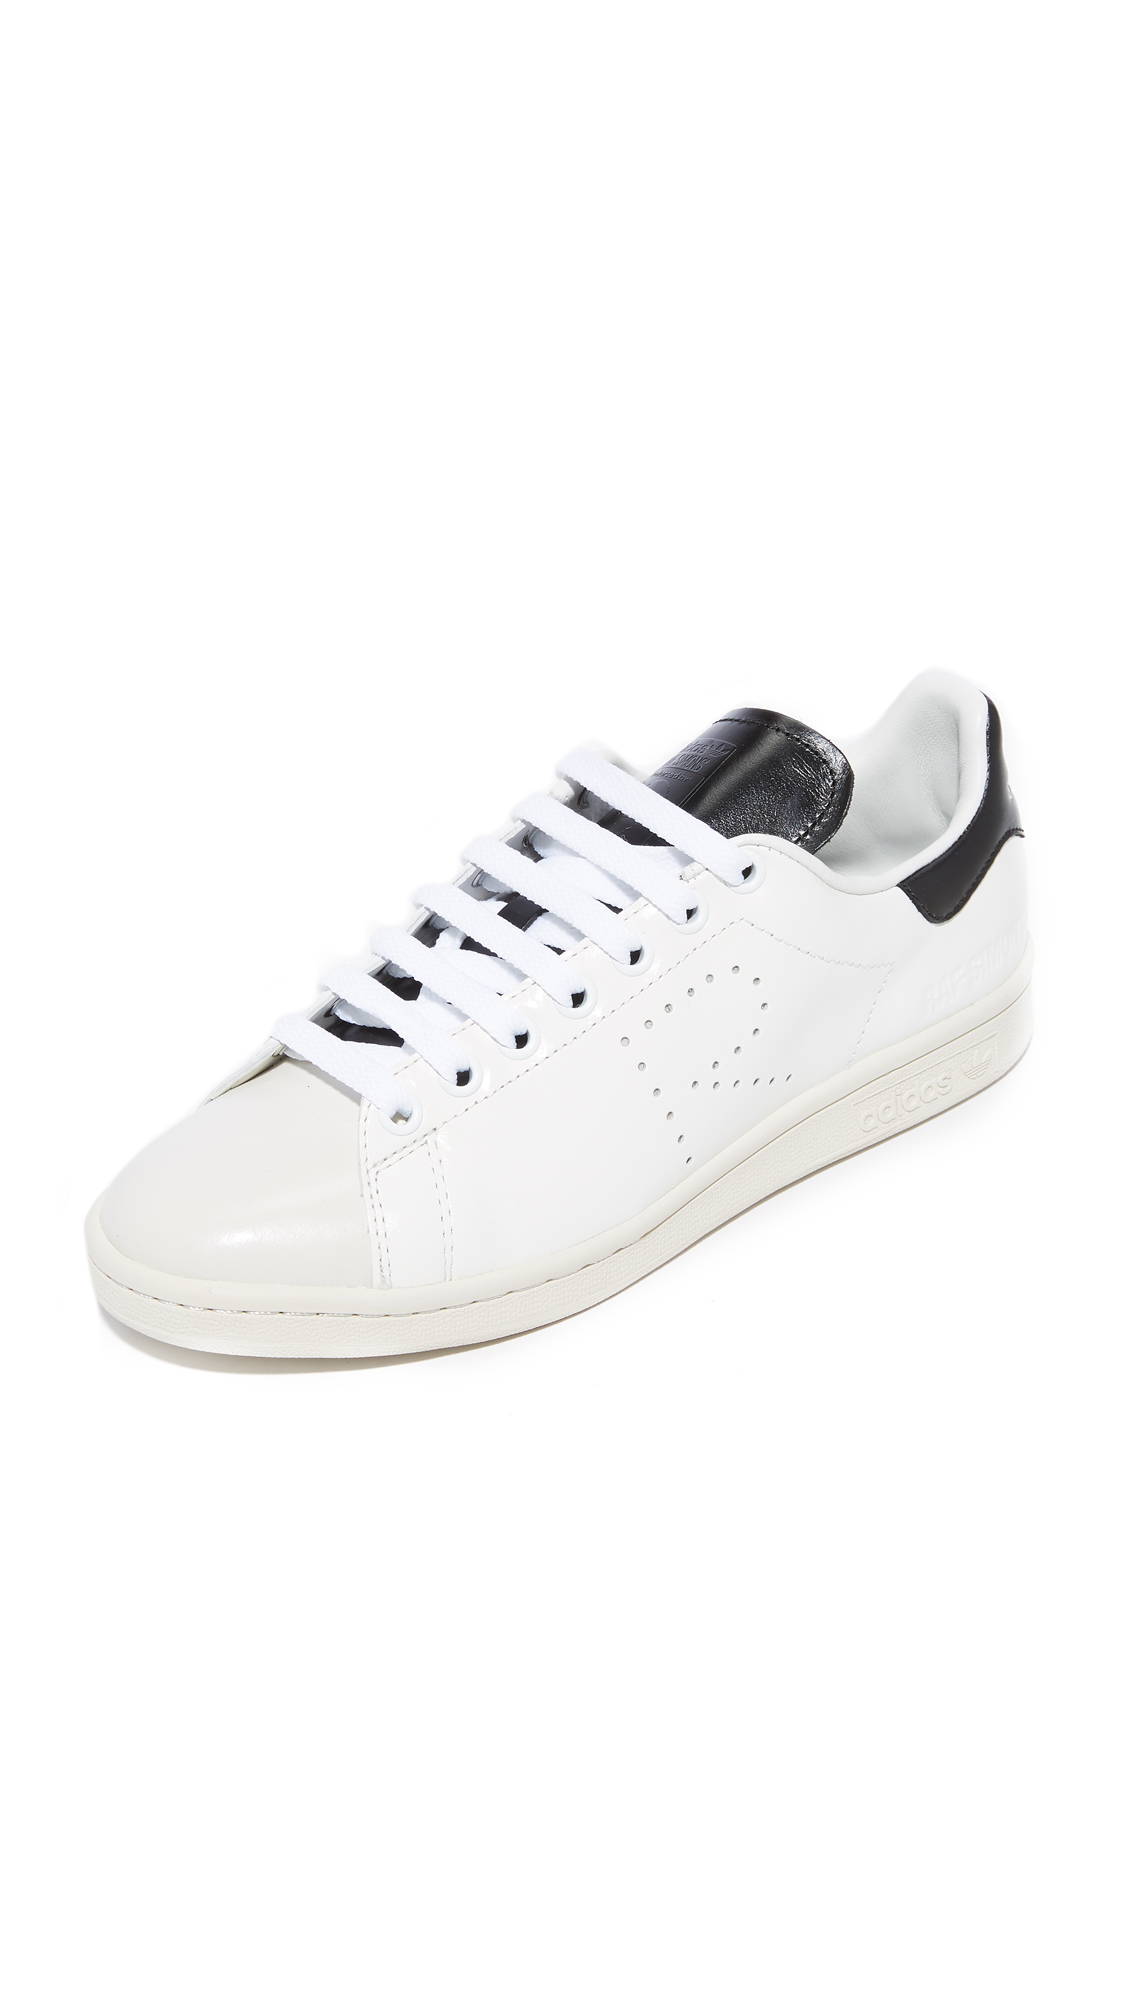 Adidas Raf Simons Stan Smith Sneakers - Optic White/Black/Talc